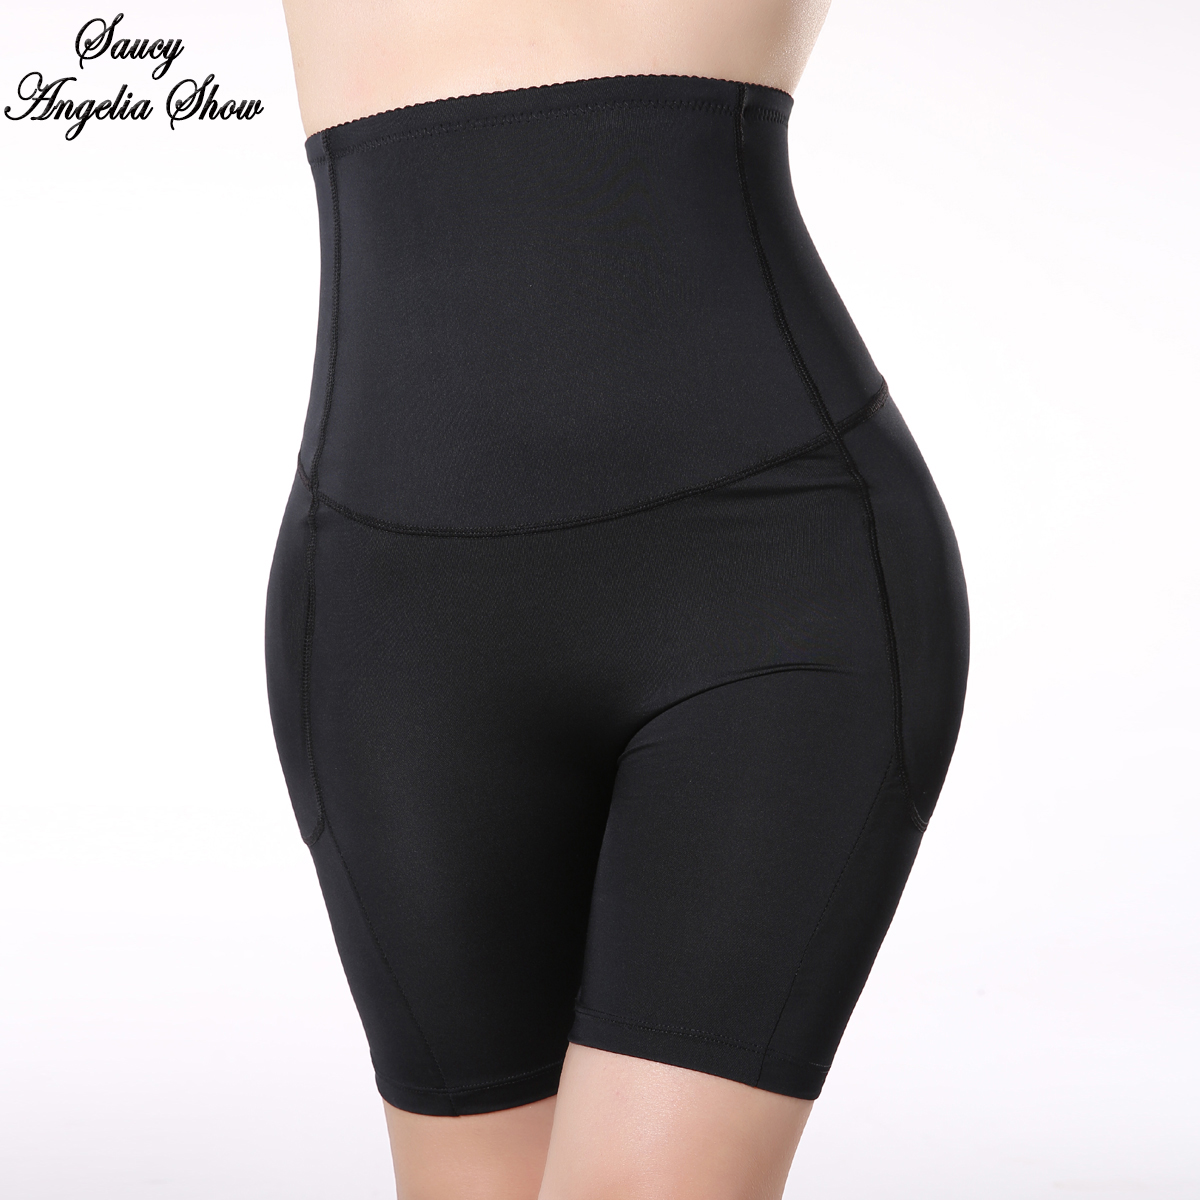 New <font><b>Sexy</b></font> <font><b>Women</b></font> Waist Trainer <font><b>Breathable</b></font> Corset Belly Shapewear Lingerie Hip Paded Booty Butt Lifter Body Shaper Bodysuit <font><b>Panties</b></font> image